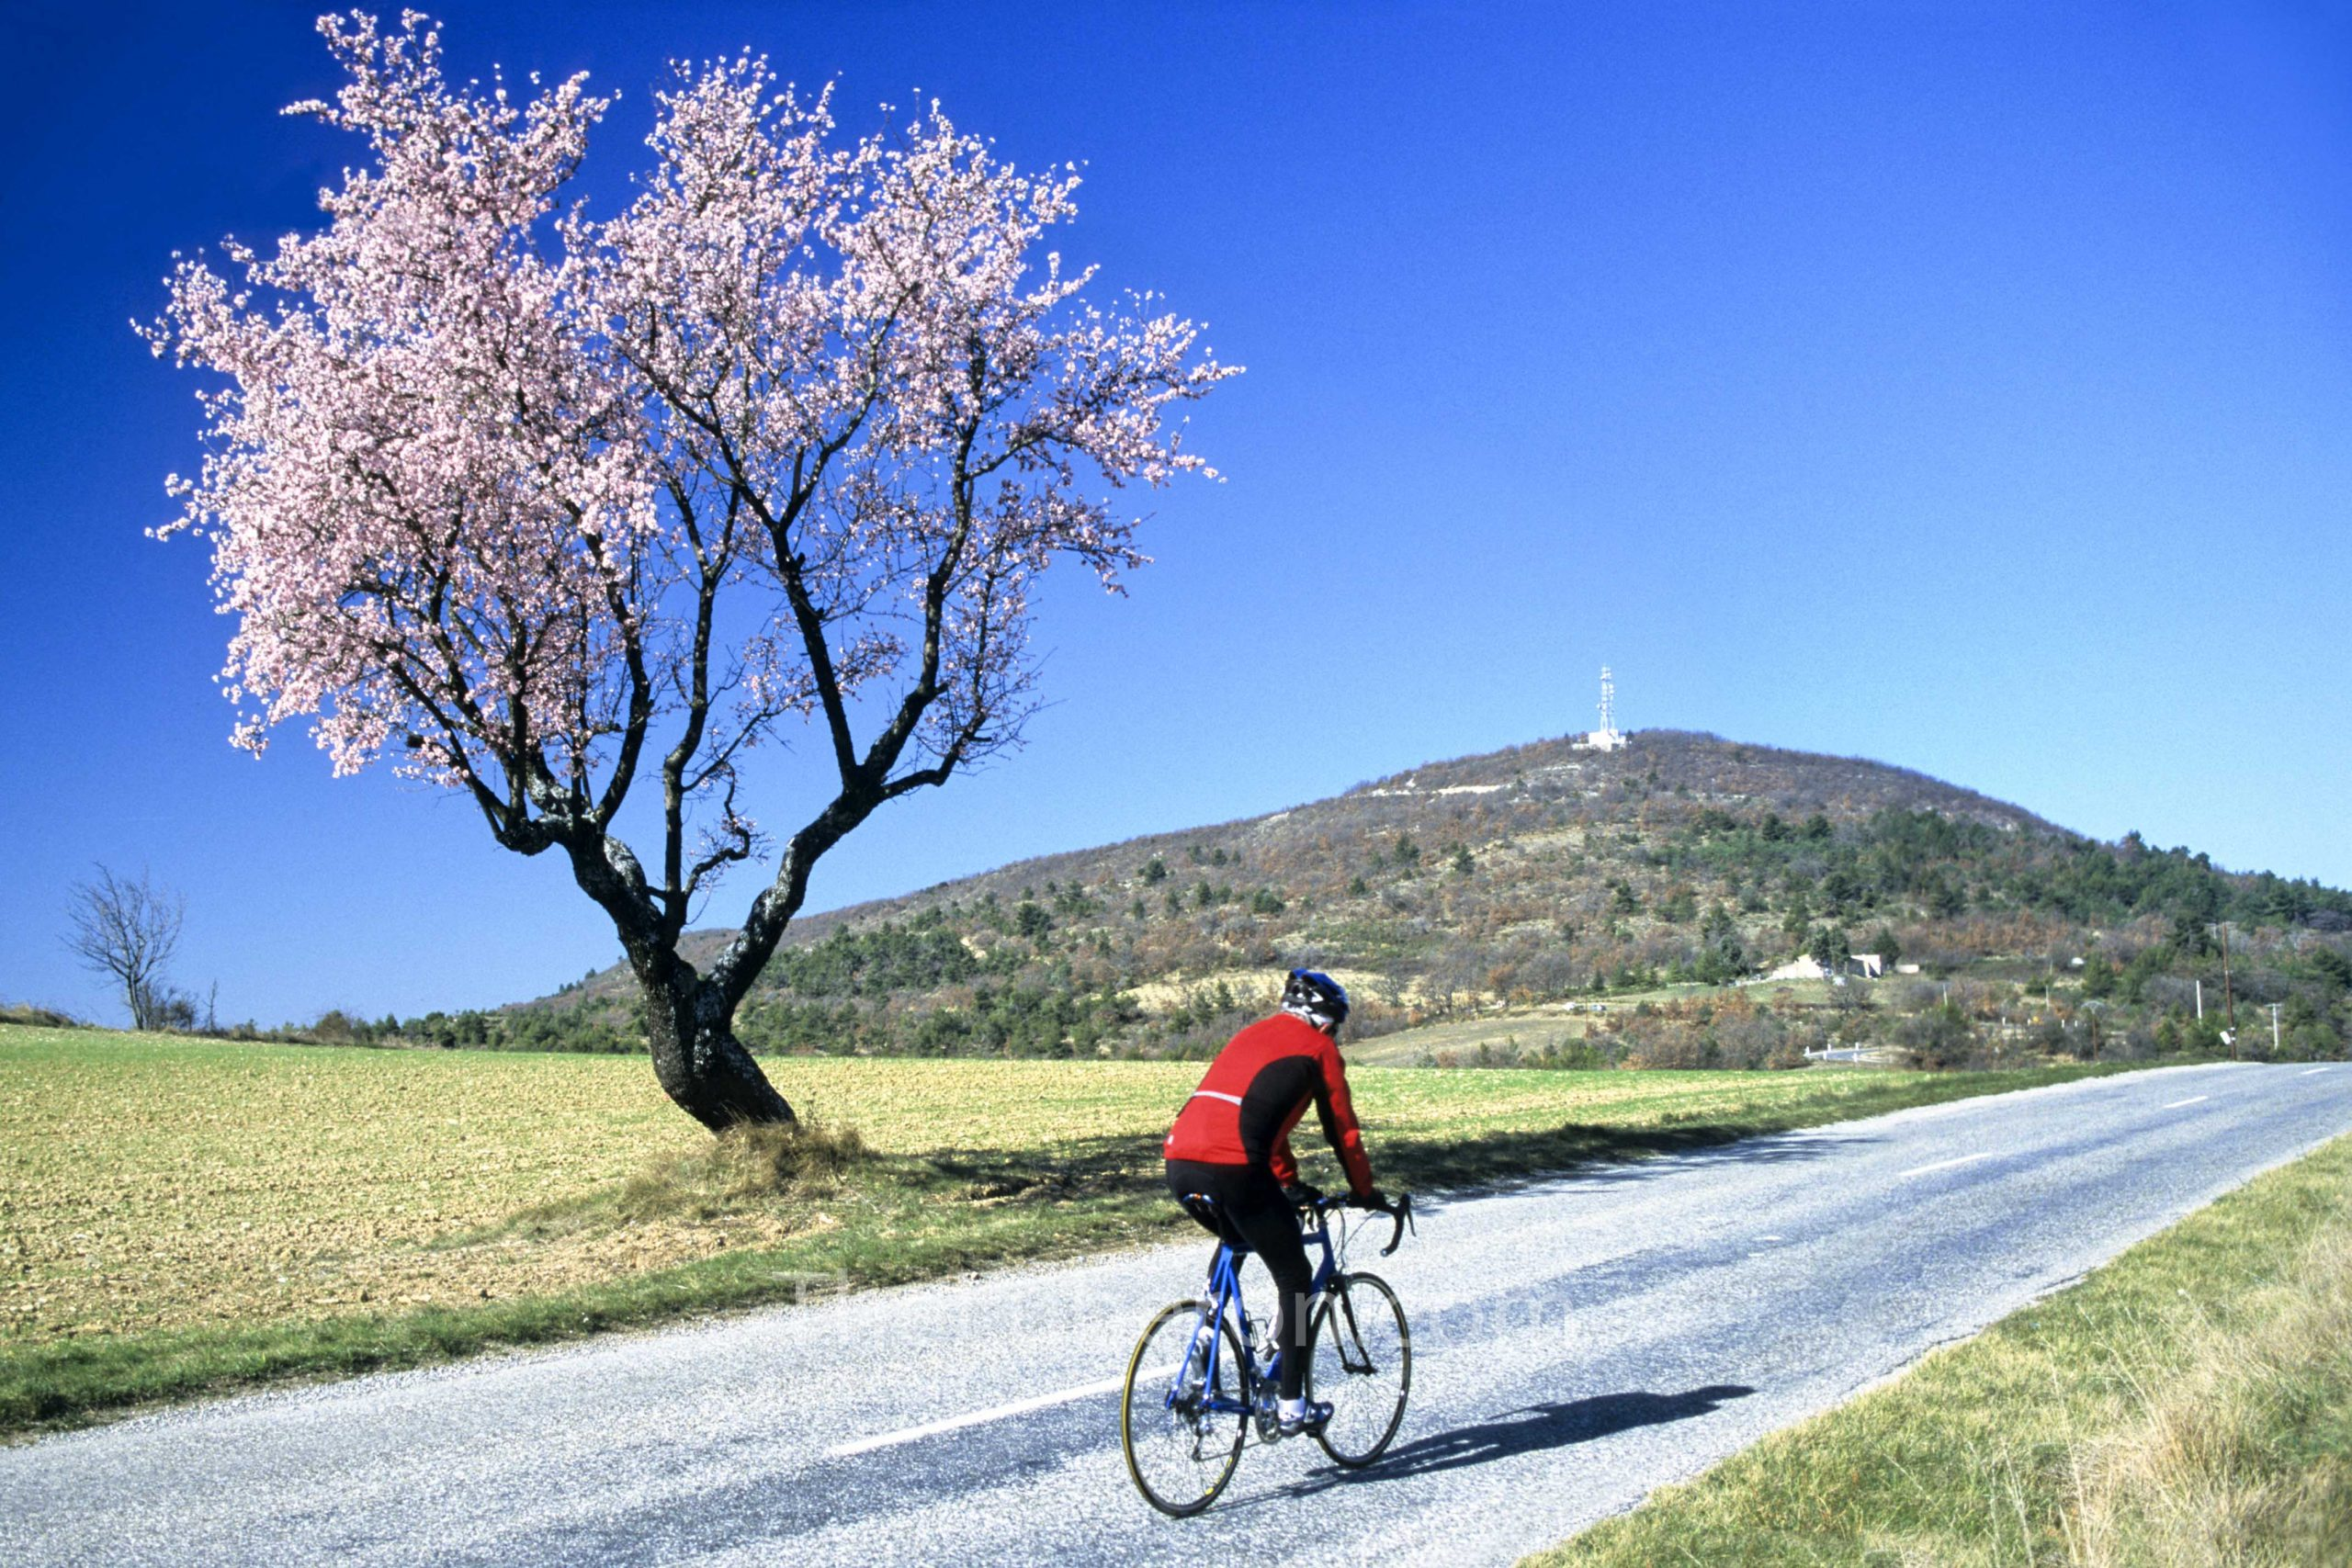 Cyclist passt a tree in blossom